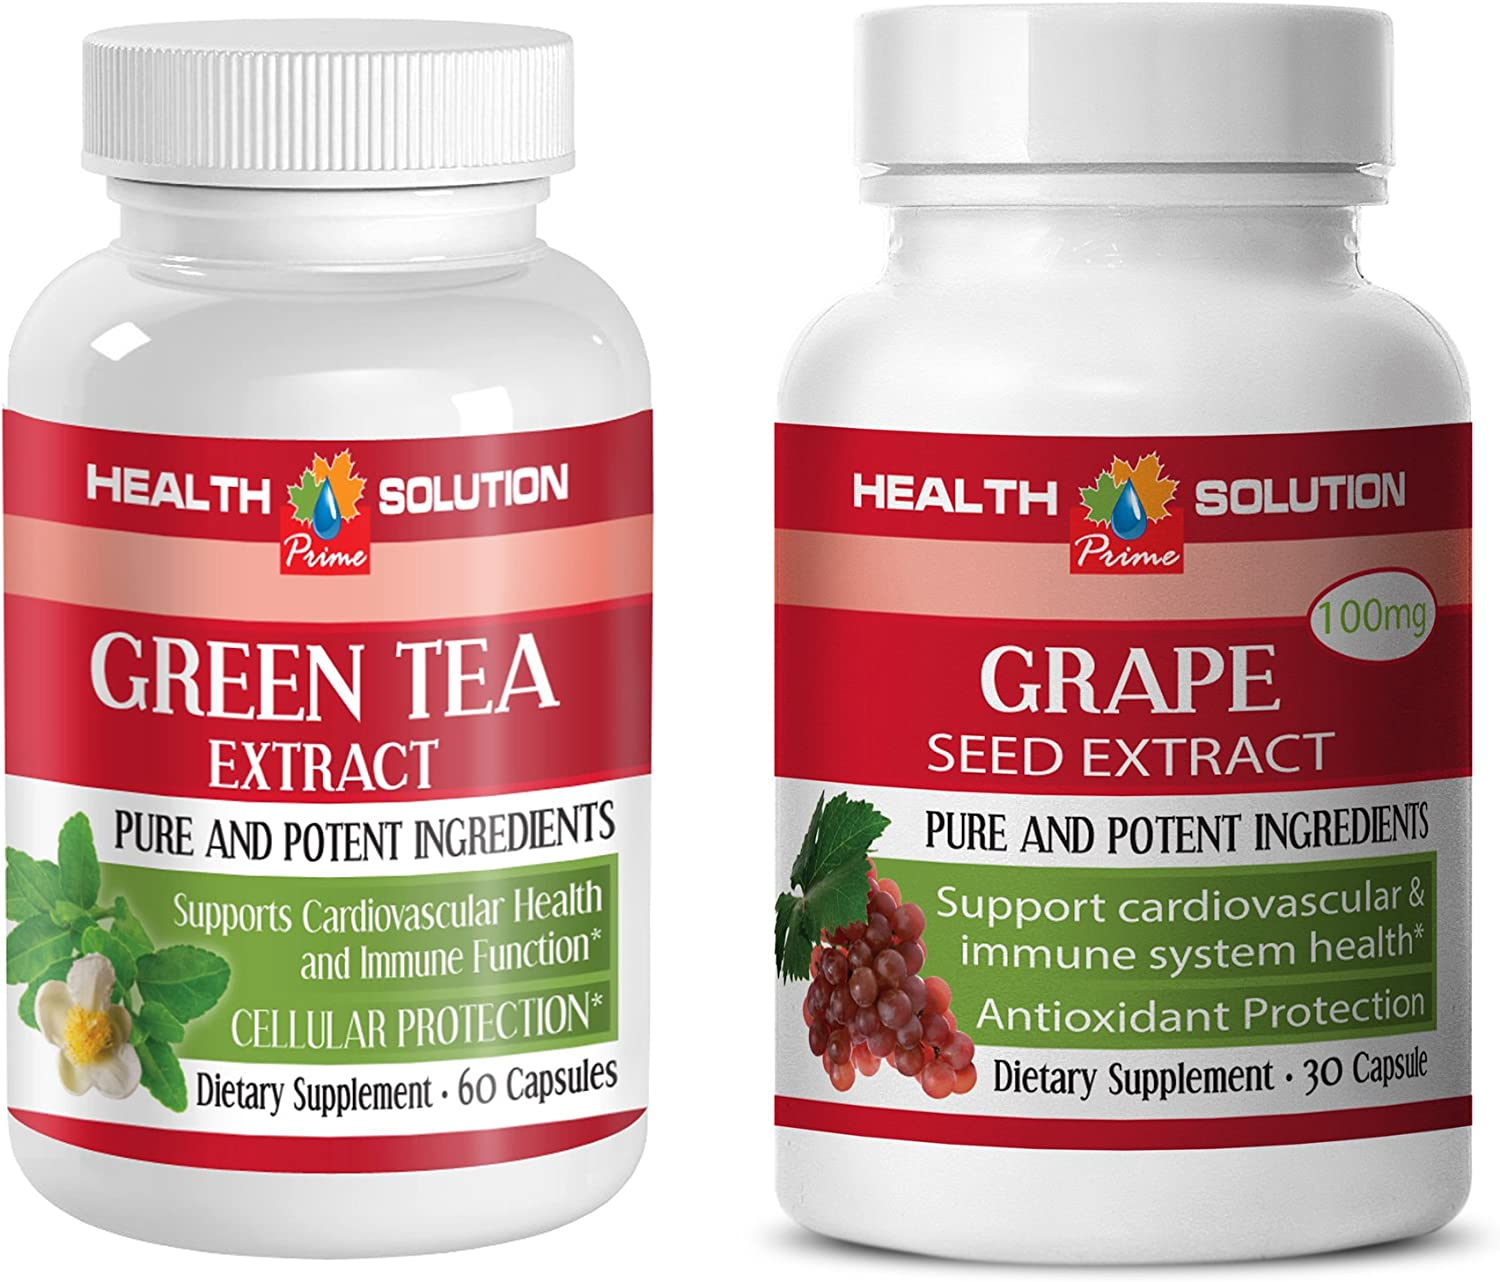 Immune Booster Sales results No. 1 - Green Tea Financial sales sale Grape Extract Ext Seed